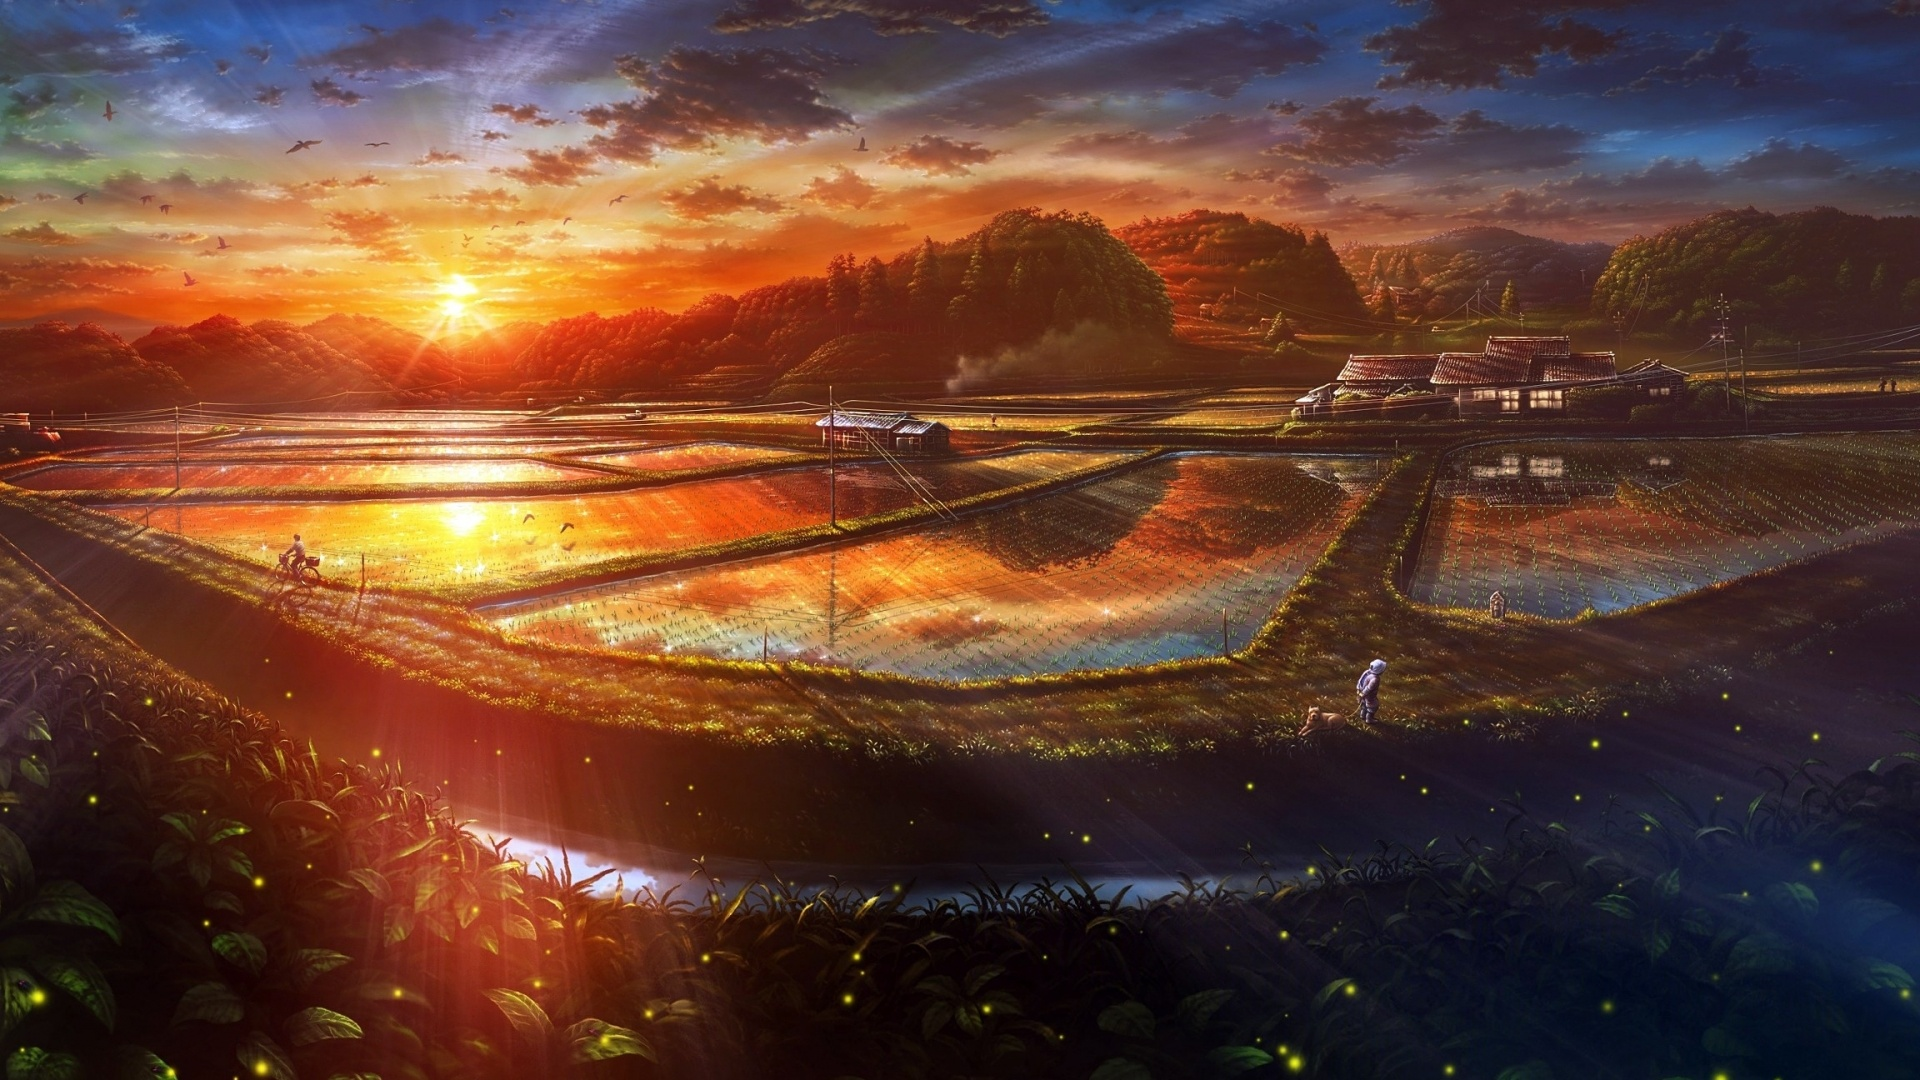 1920x1080 Sunset Anime Scenery Drawn Desktop Pc And Mac Wallpaper